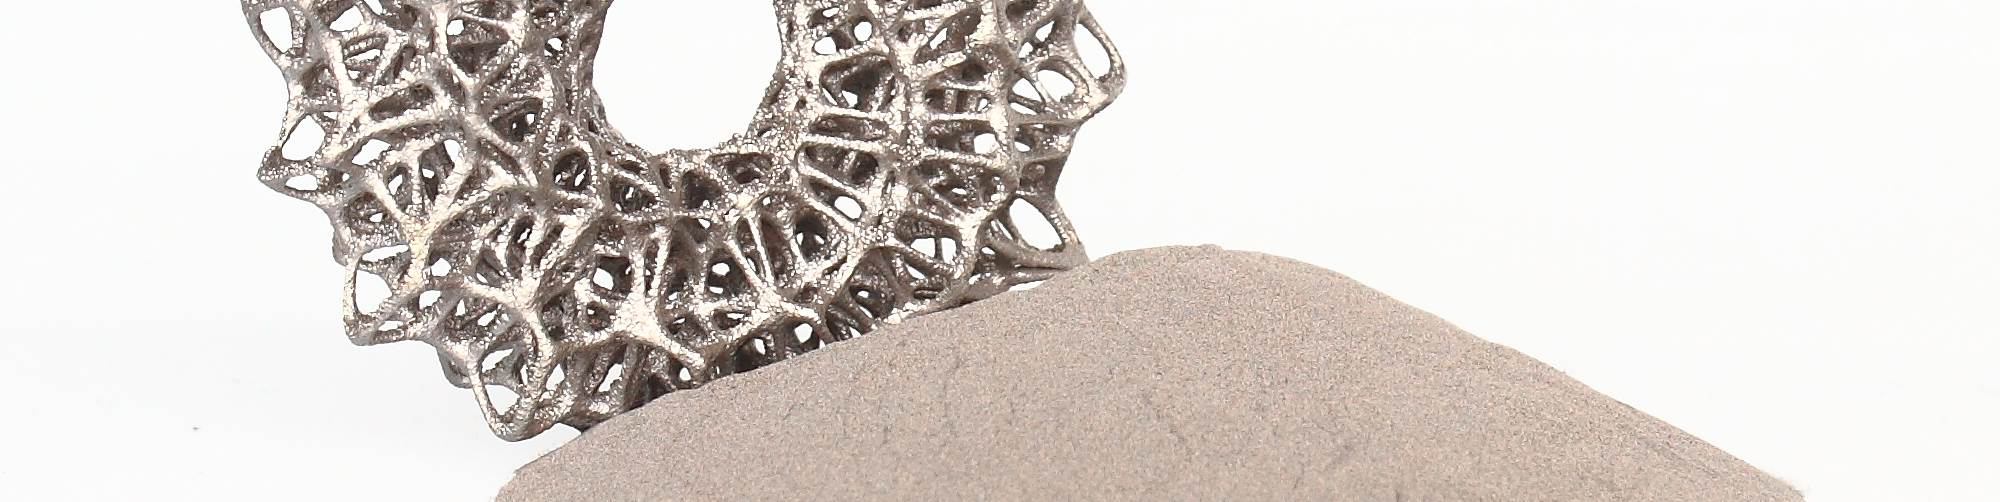 Over 80% of 3D printed parts are made using polymers.